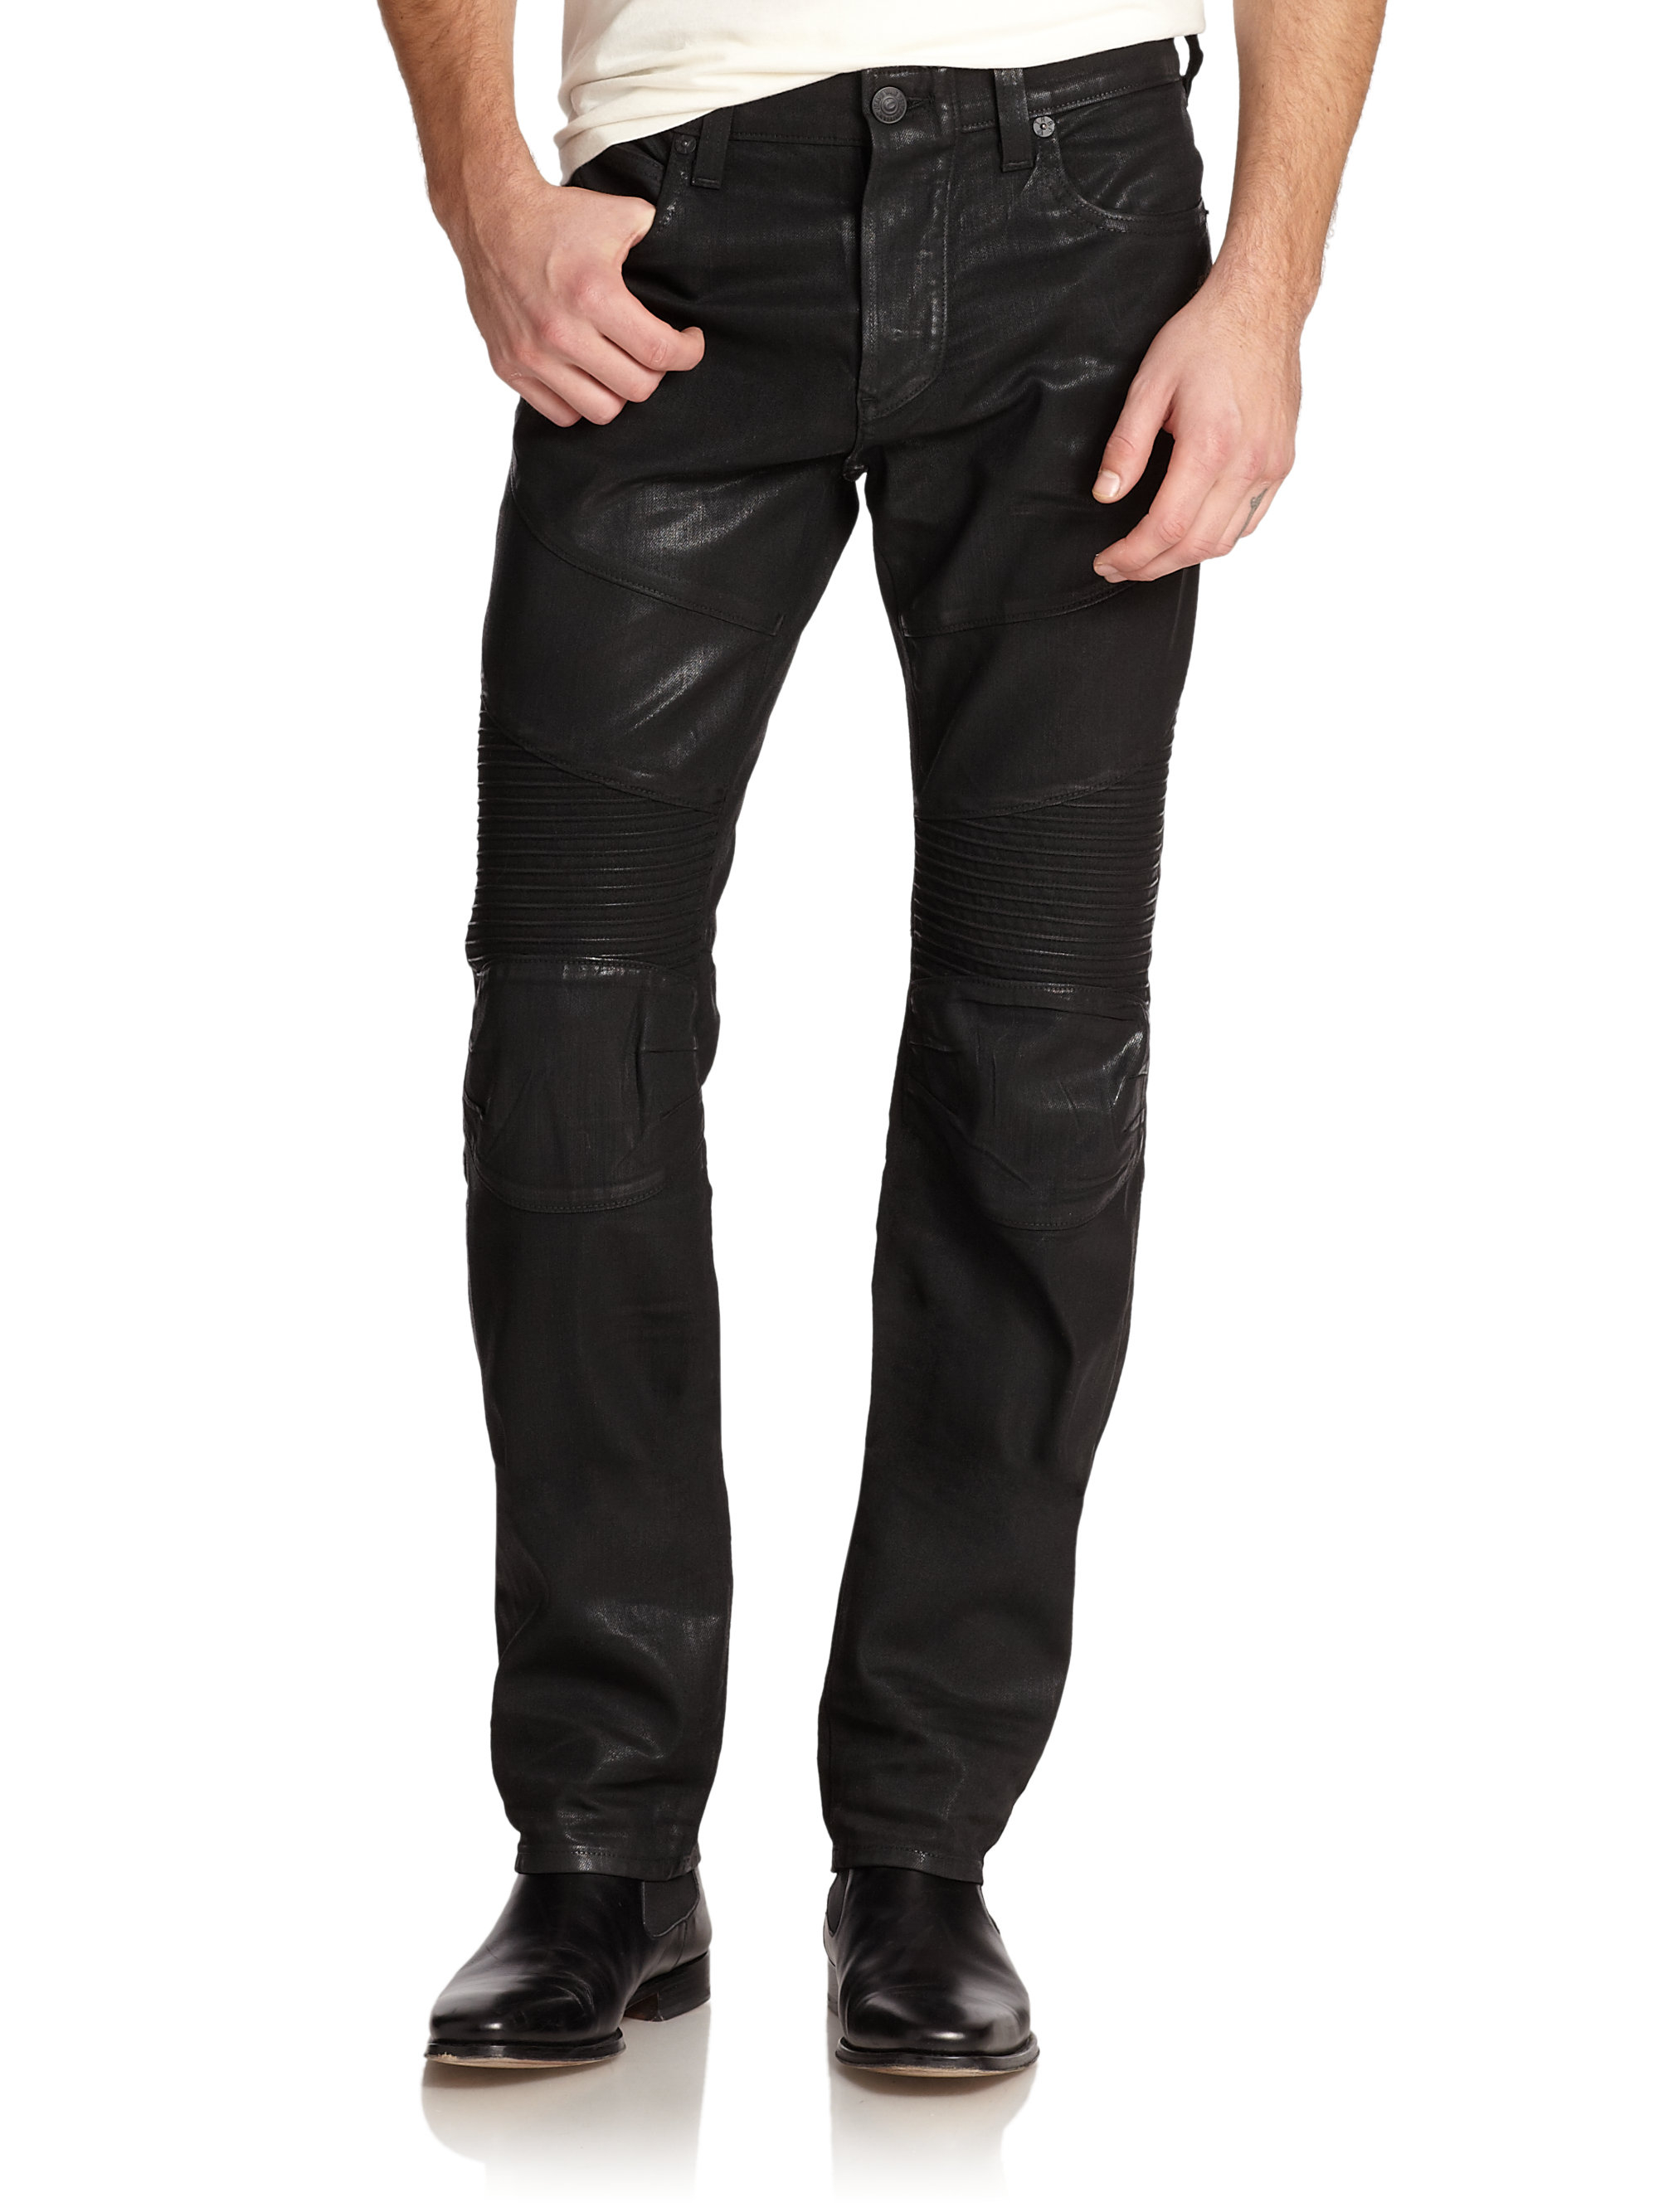 Lyst - True religion Rocco Coated Moto Jeans in Black for Men